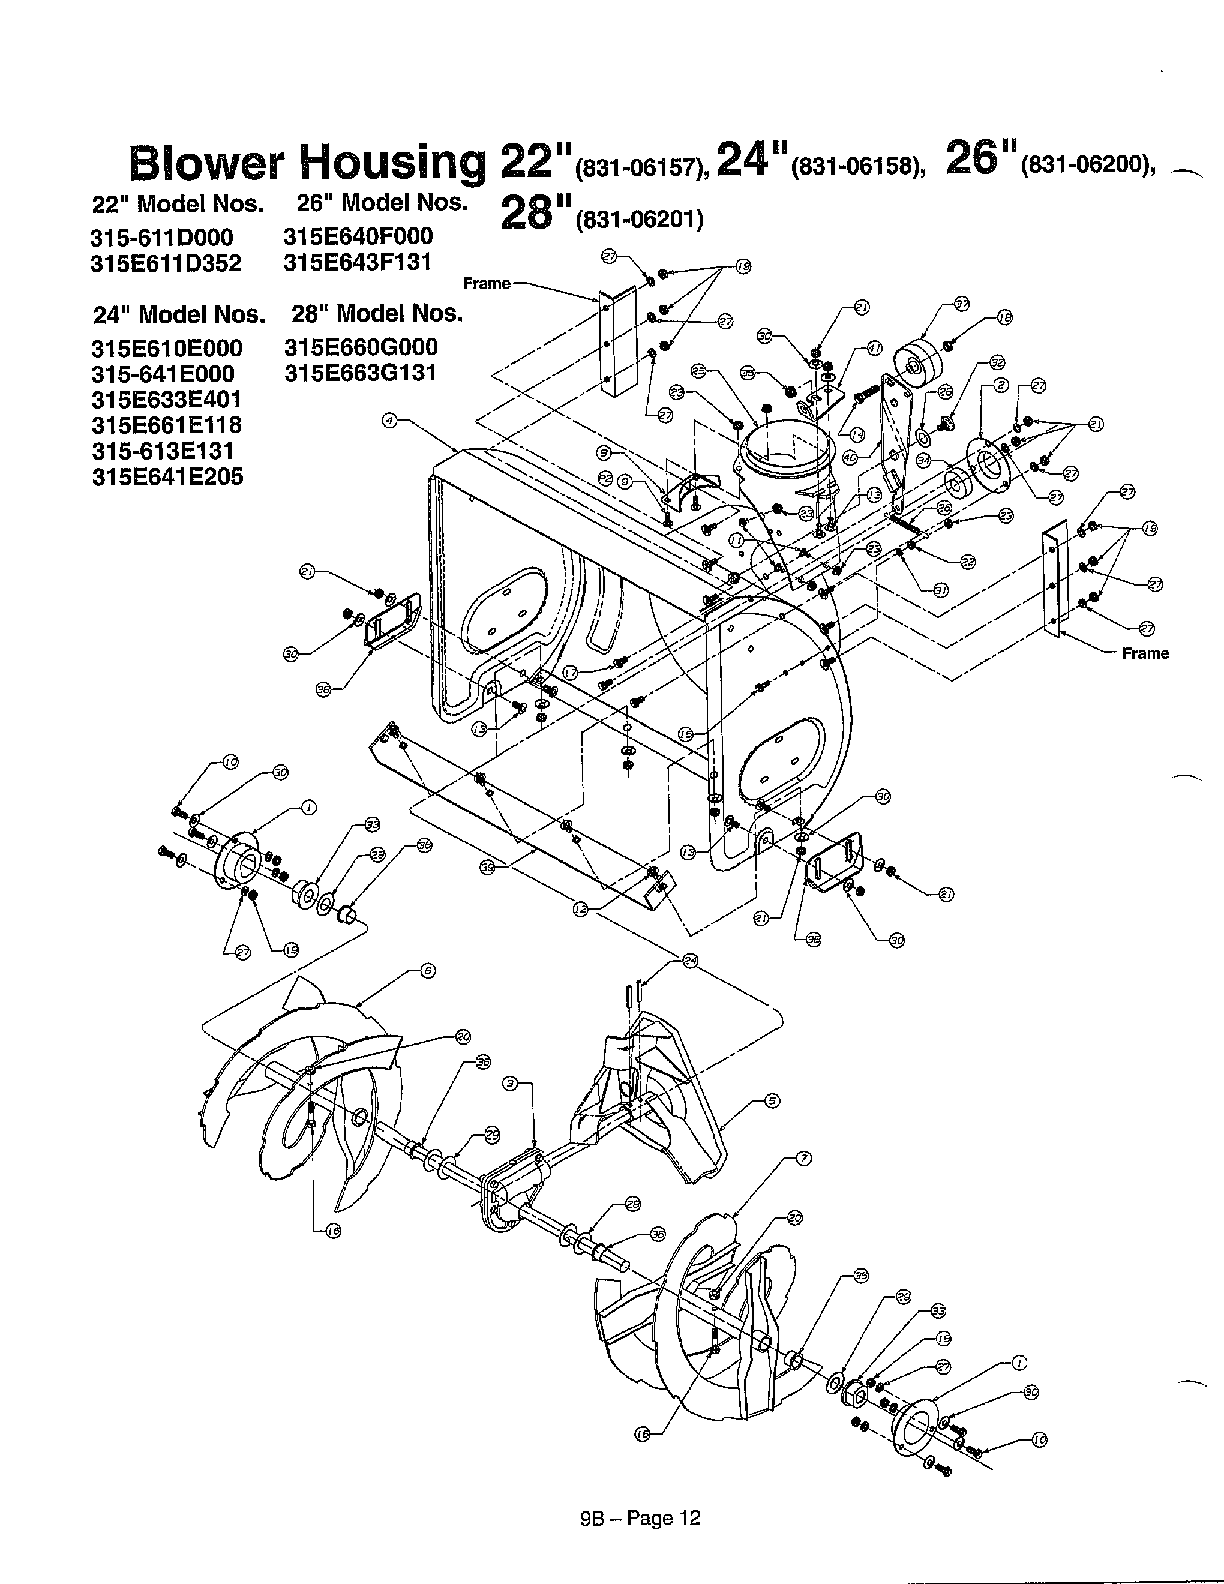 BLOWER HOUSING 26` Diagram & Parts List for Model